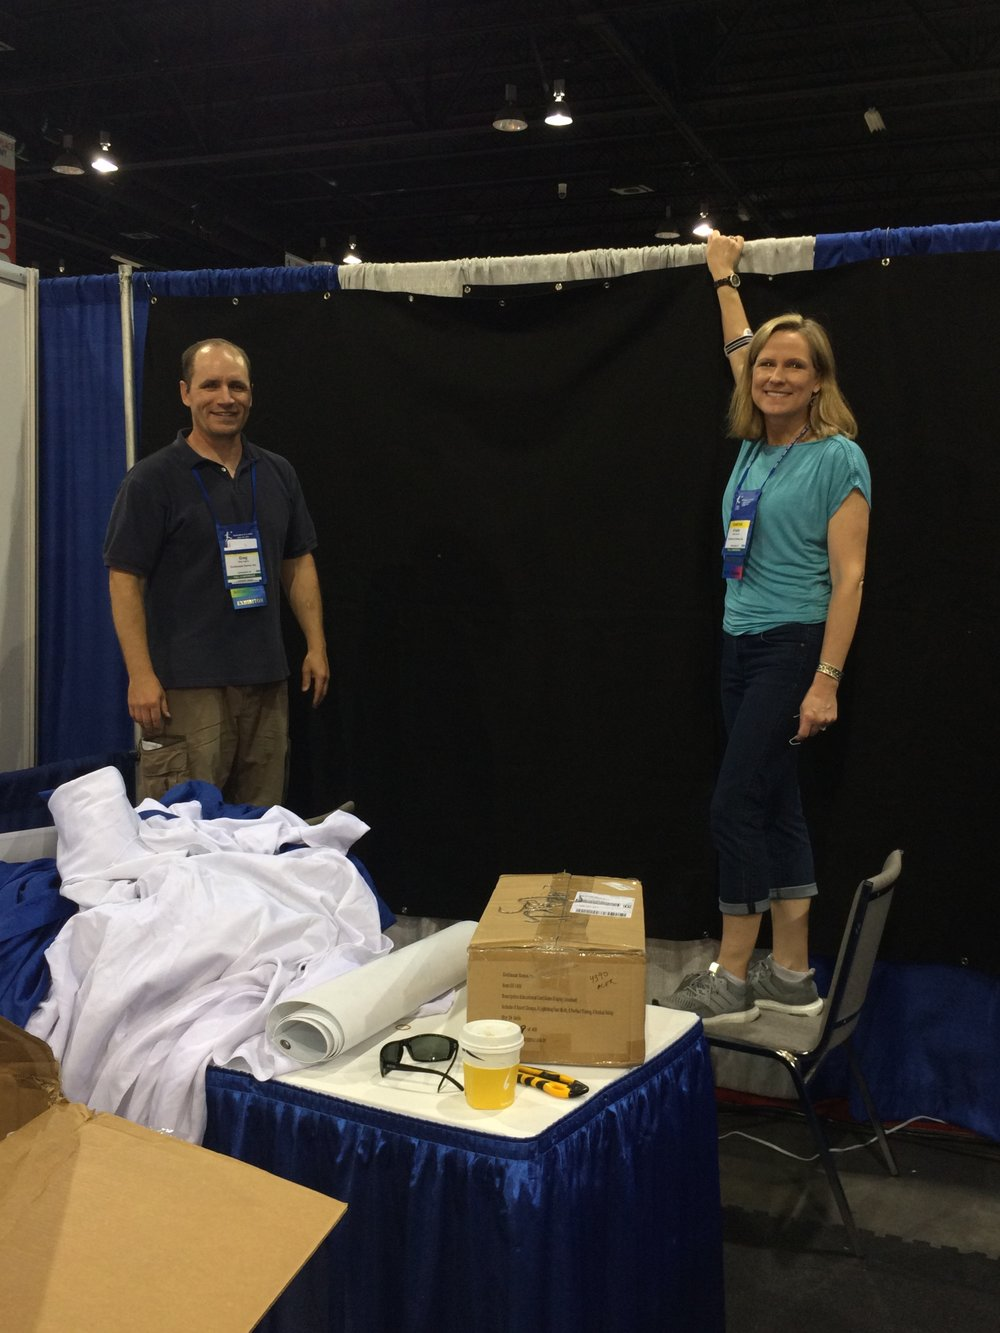 Kristin Miller Burrell and Greg Hughes setting up Continuum Games booth at ASTRA